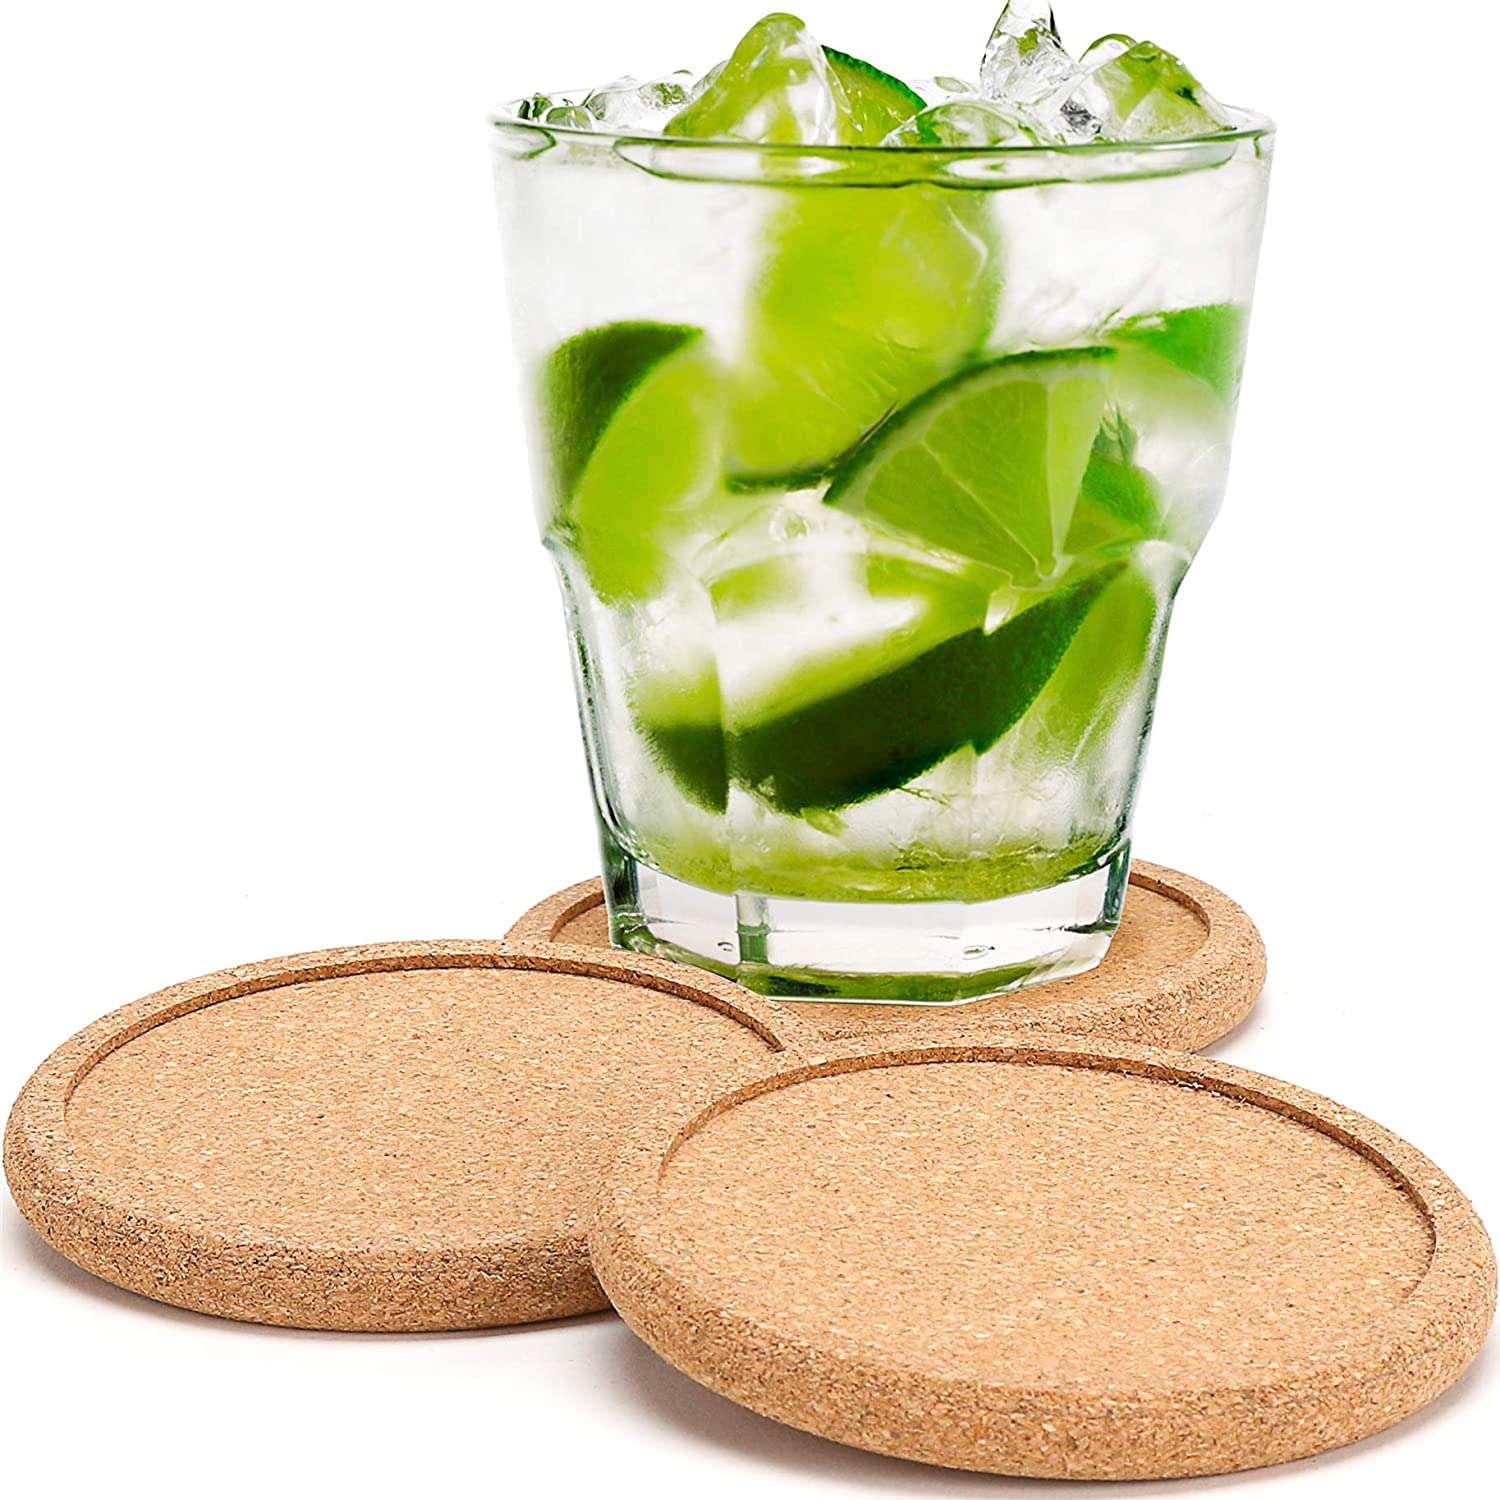 Dulce cocina cork coasters for drinks